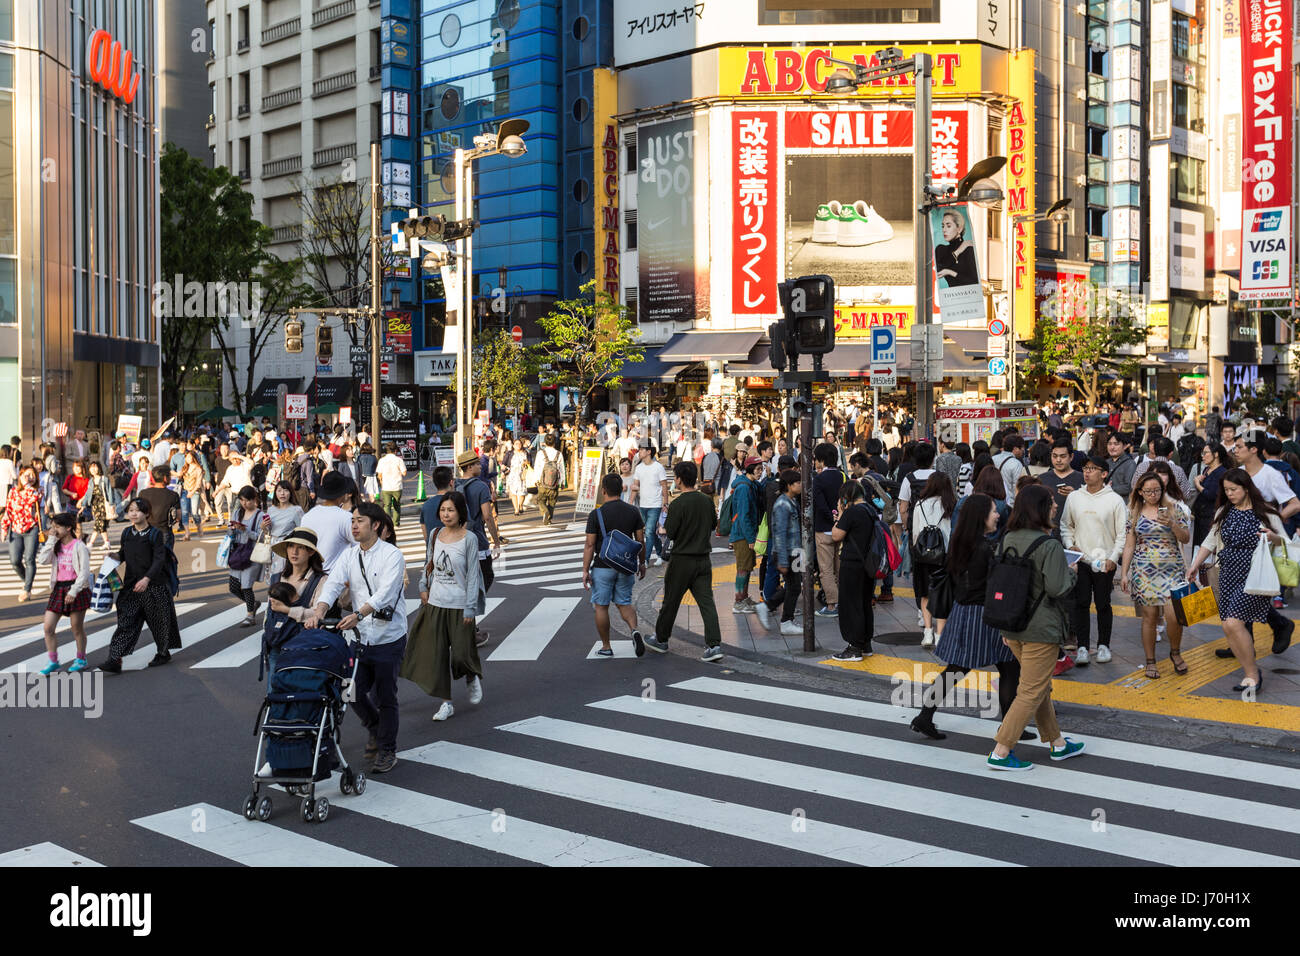 TOKYO - MAY 5, 2017: People walk across the streets in the very busy Shinjuku district in Tokyo, Japan capital city. - Stock Image